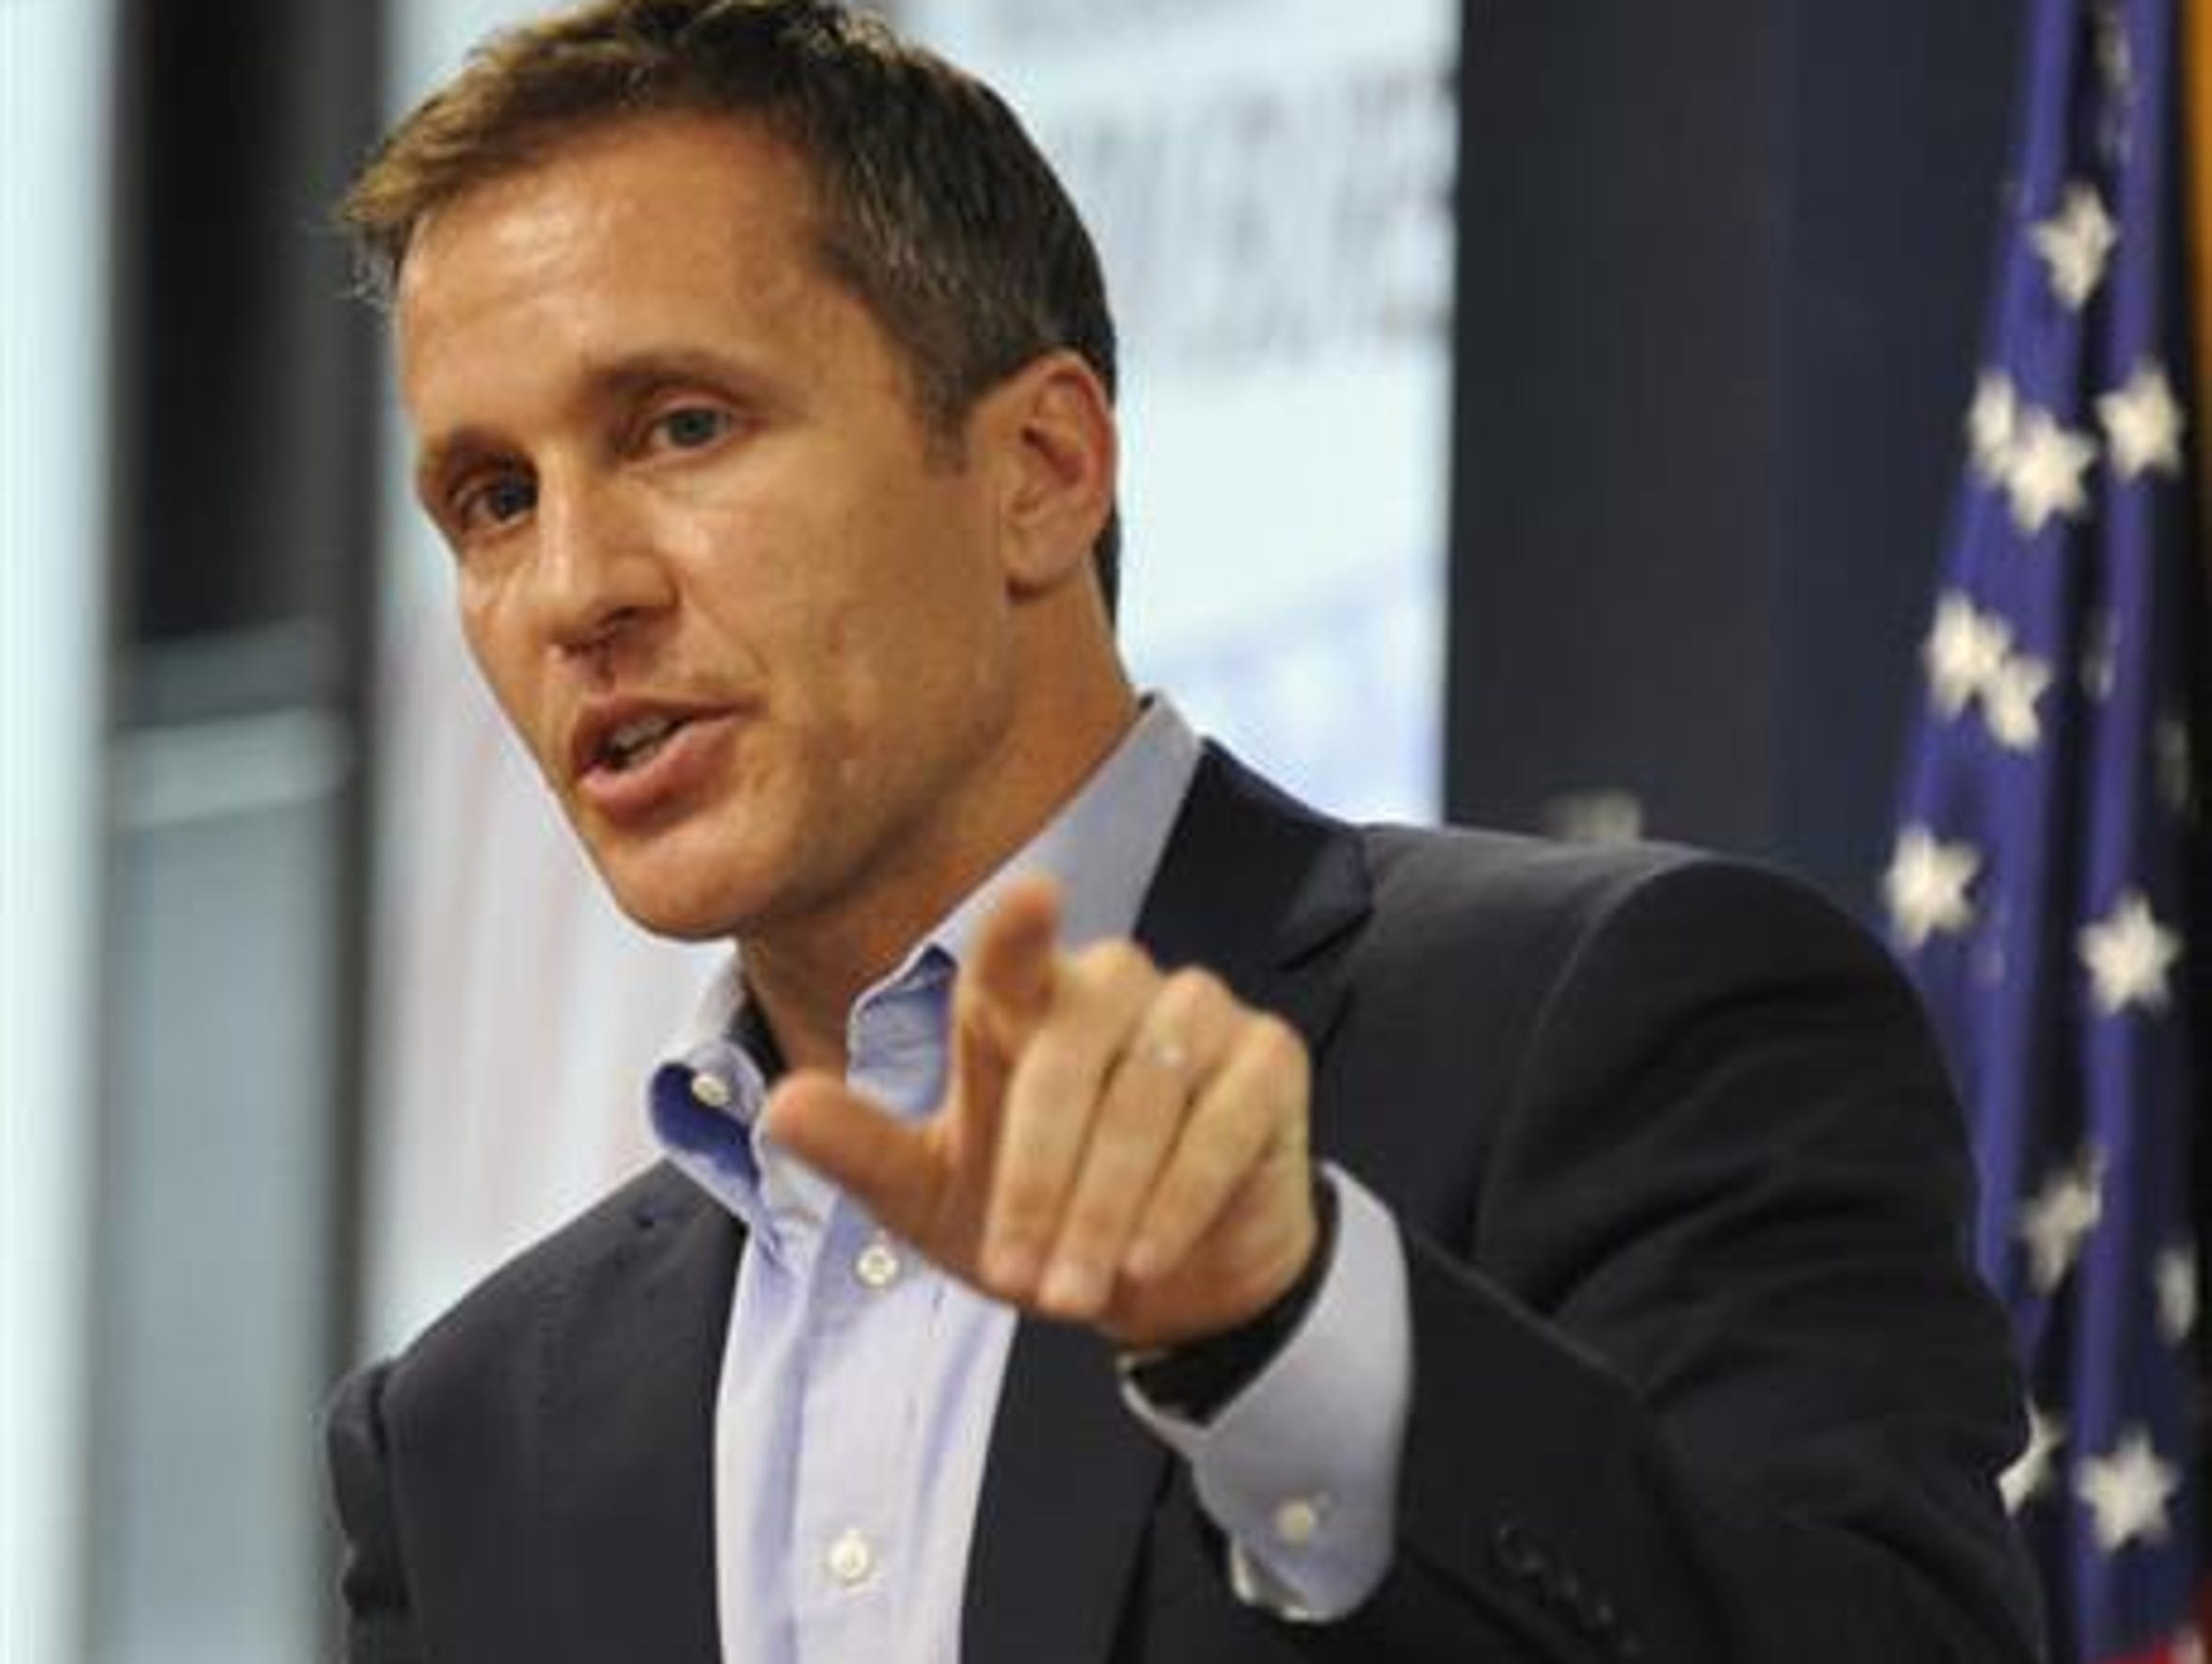 Gov. Eric Greitens has publicly admitted to a 2015 affair but denied threatening to use a semi-nude picture to blackmail the woman, who has avoided comment and asked for privacy.